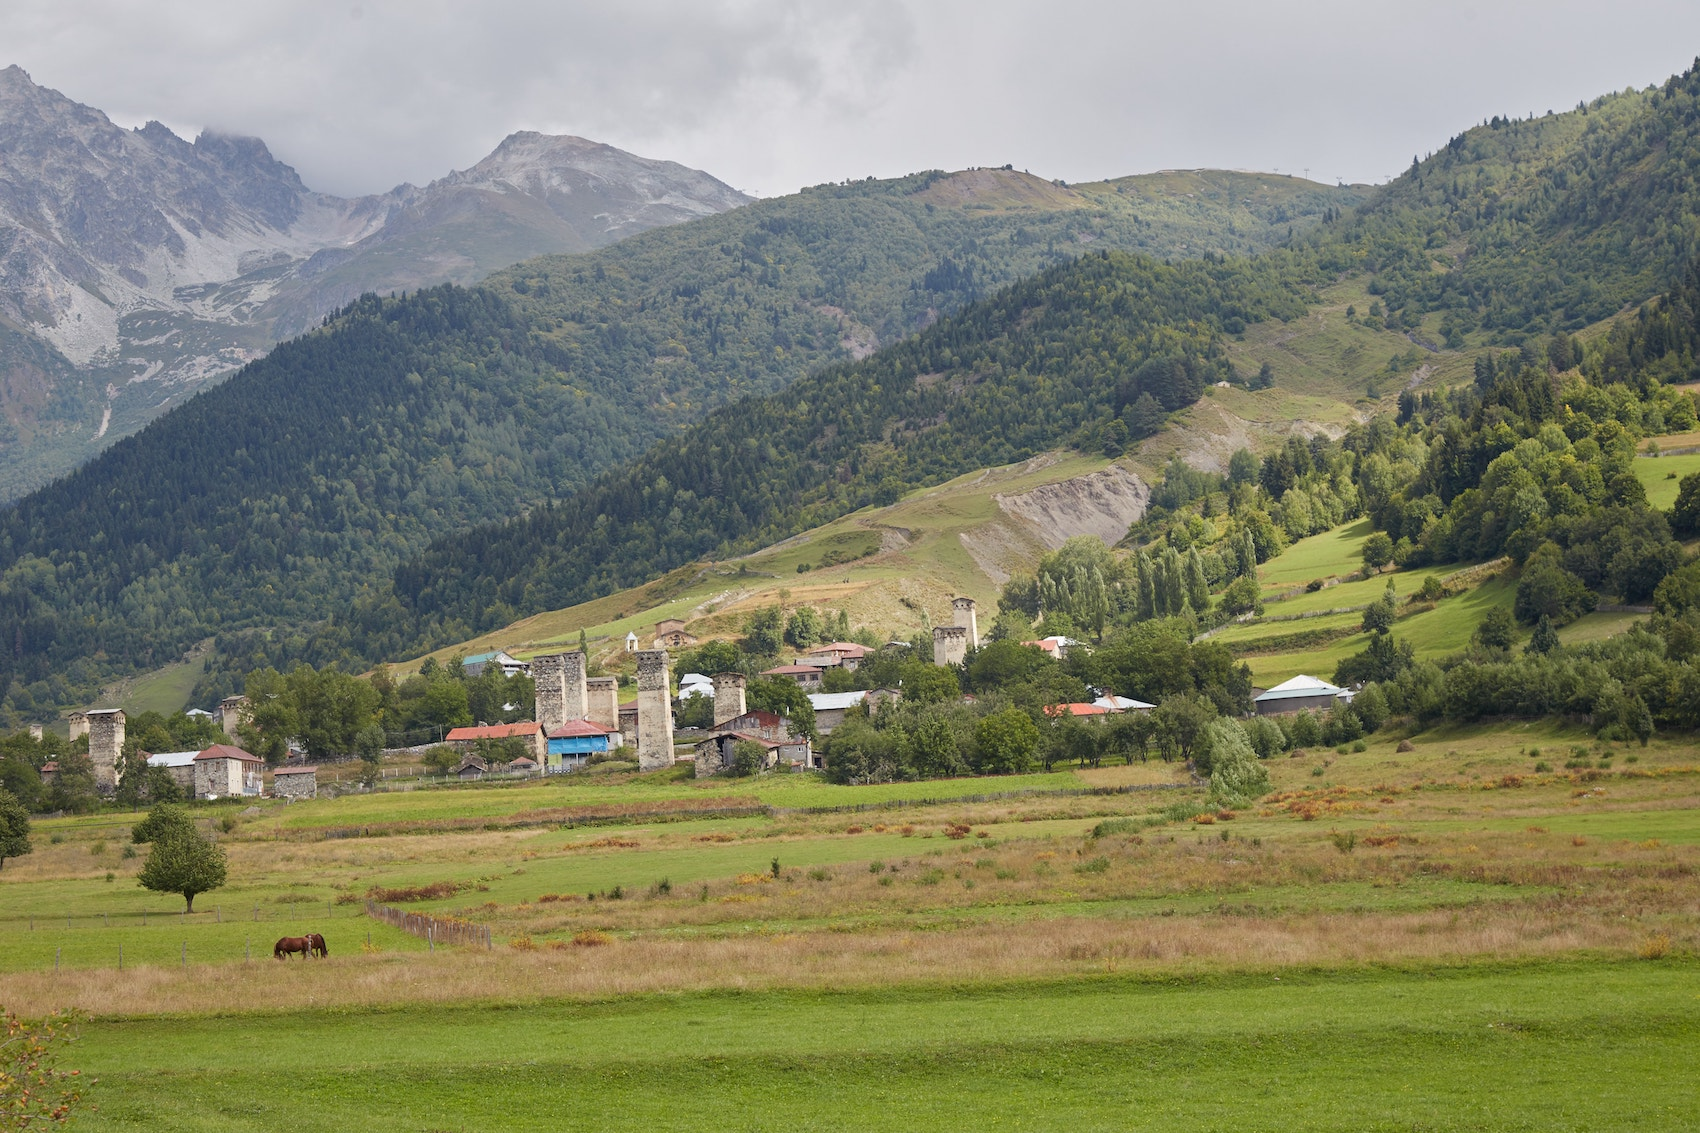 Trekking from Mestia to Ushguli Zhabeshi